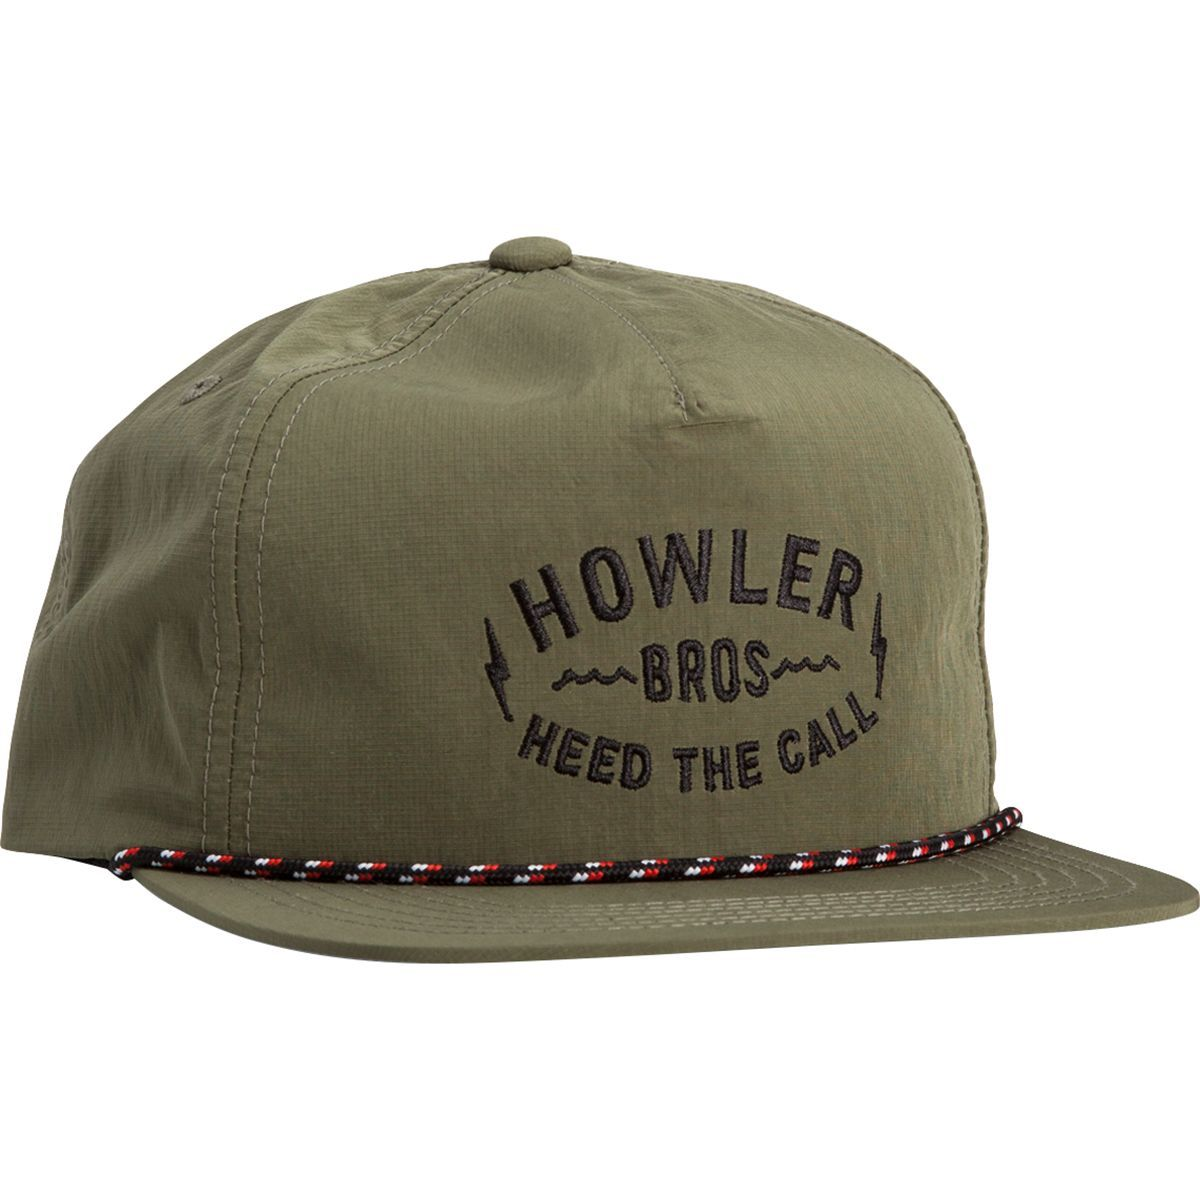 Howler Brothers Painted Howler Snapback Hat Snapback Hats Hats Snapback